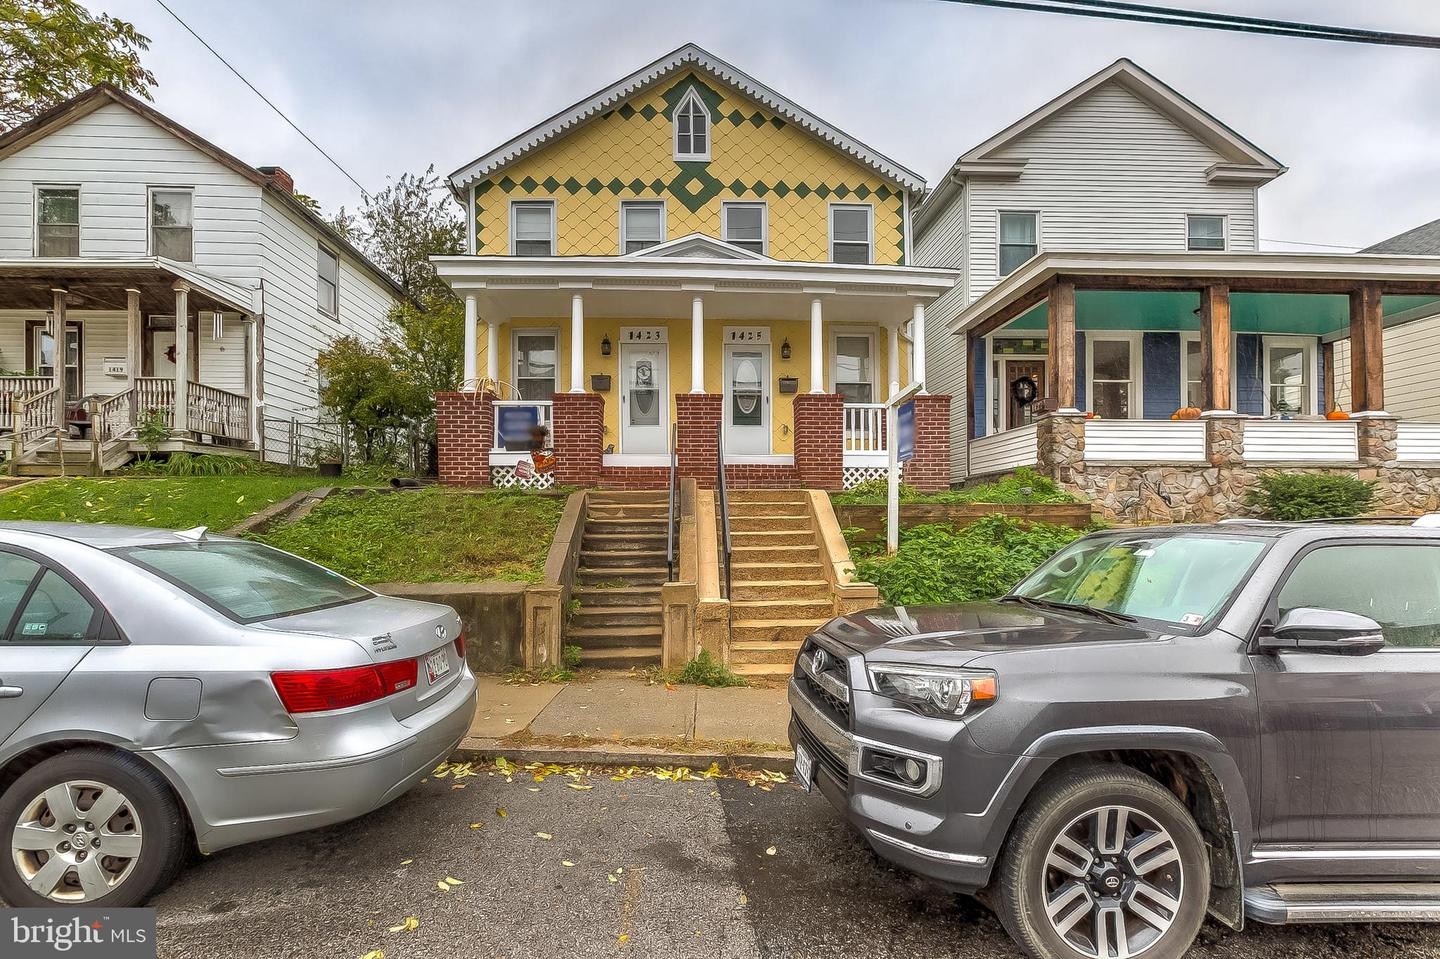 1423 36th Street   - Baltimore, Maryland 21211